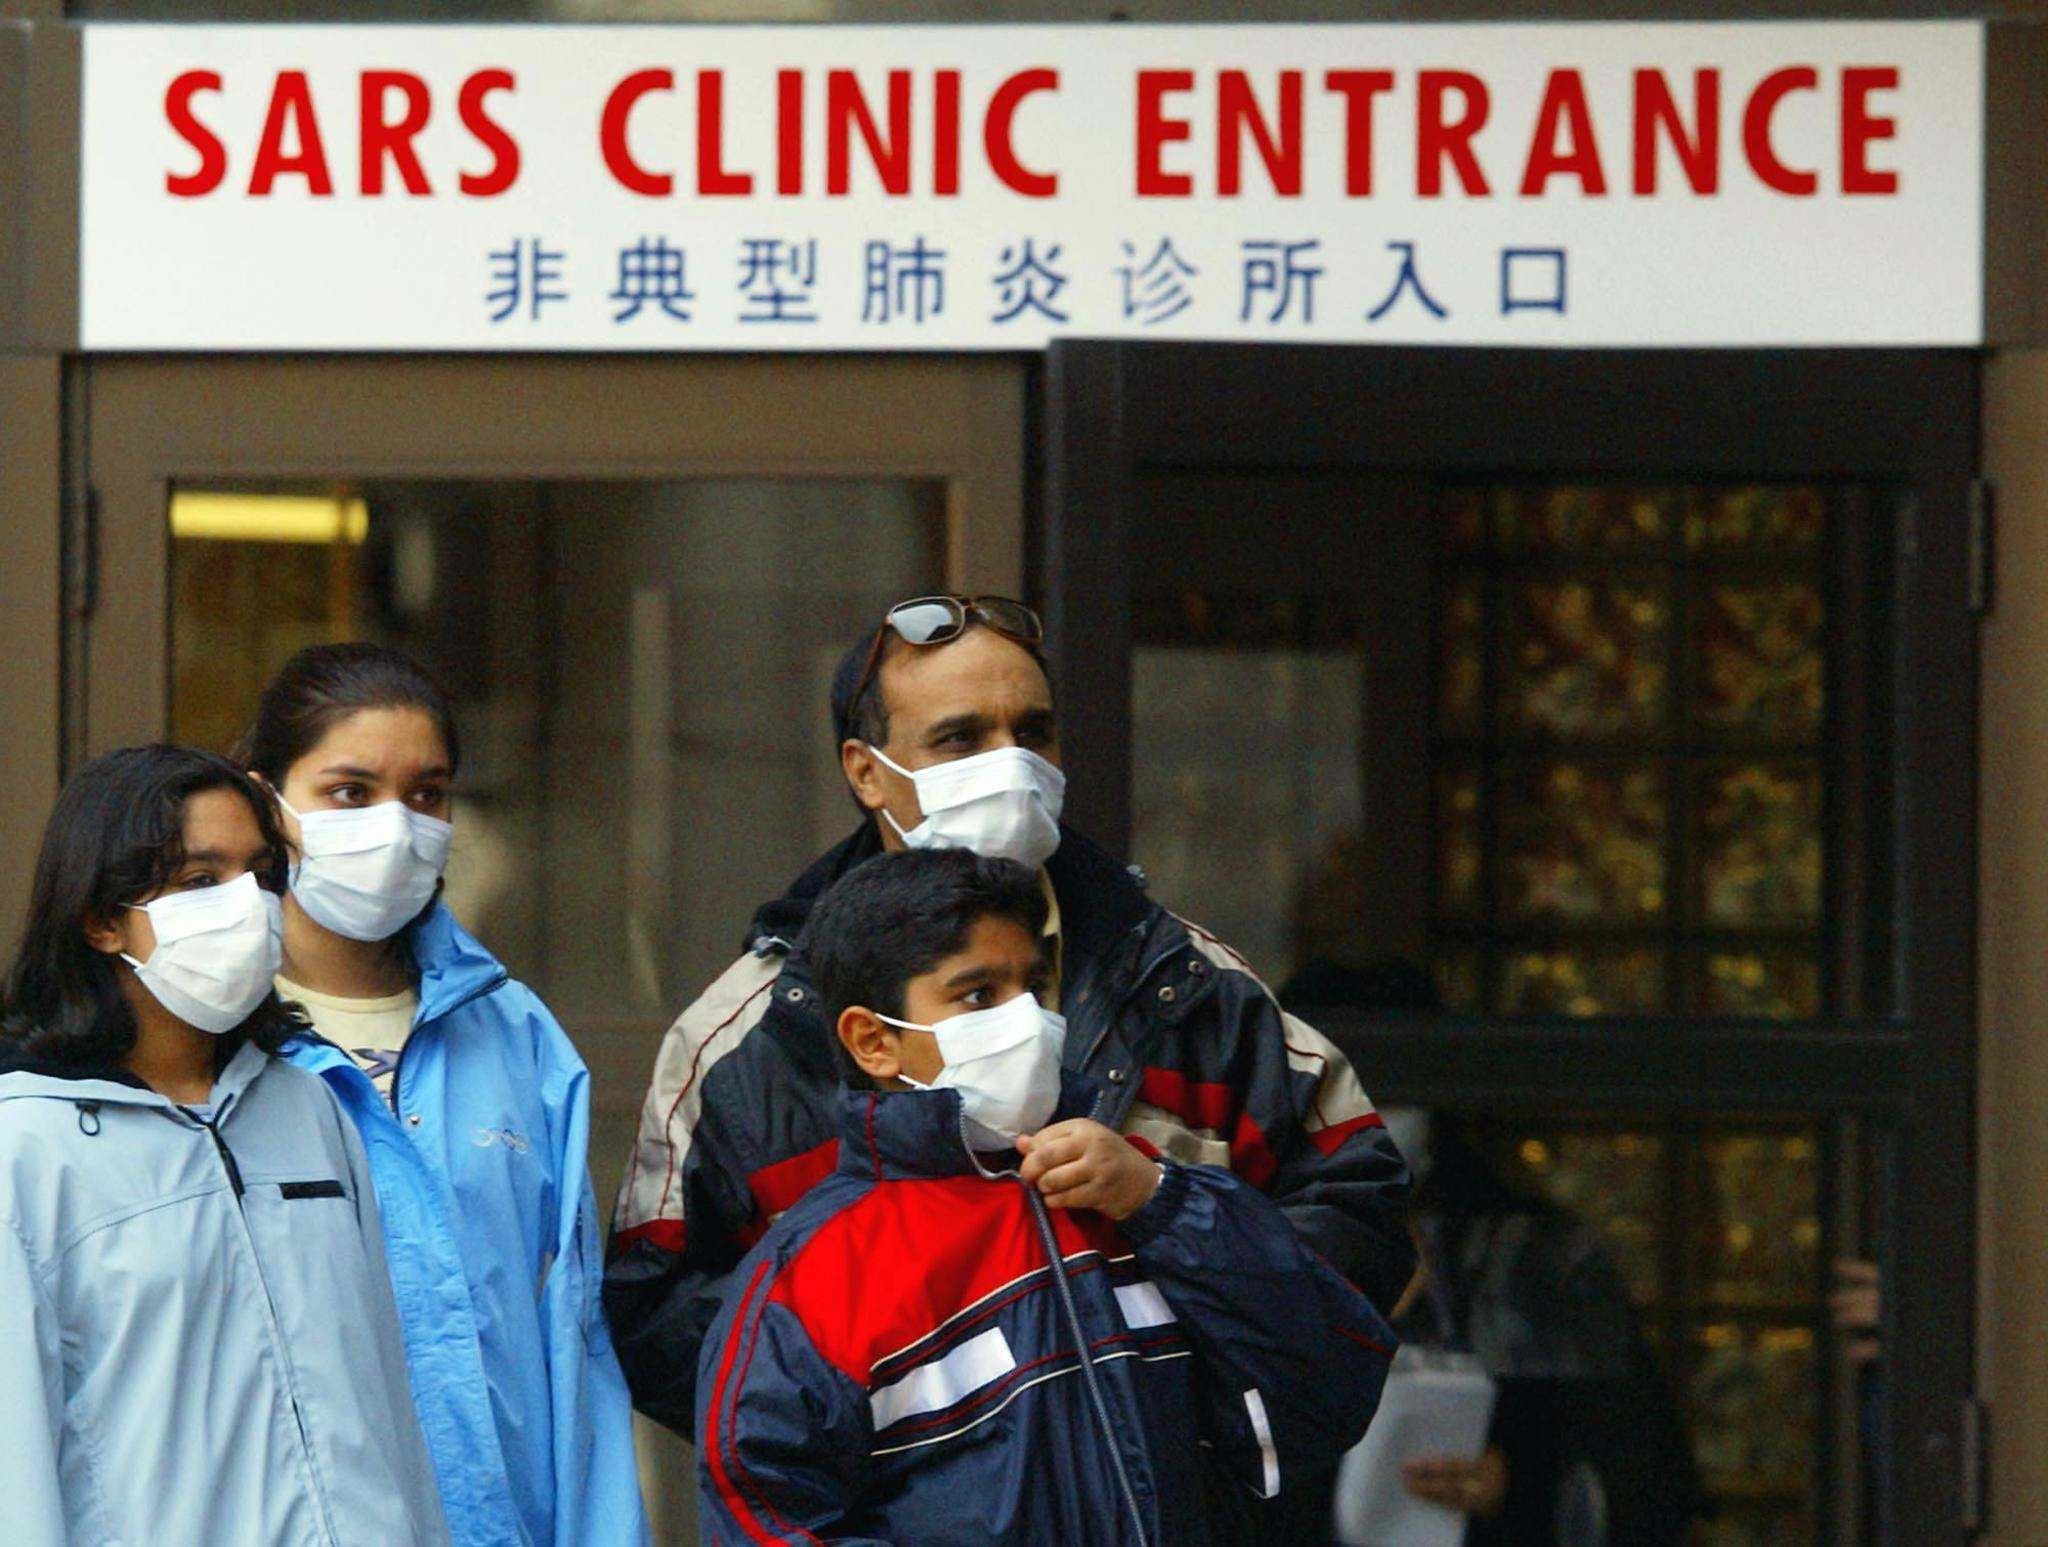 A family wears protective masks as they leave a SARS clinic in Toronto in March 2003. SARS brought the importance of public health funding to the forefront but it wasn't until after the H1N1 pandemic in 2009 that provinces committed to do more to fund public health — and many have since cut back on that spending.</p></p>